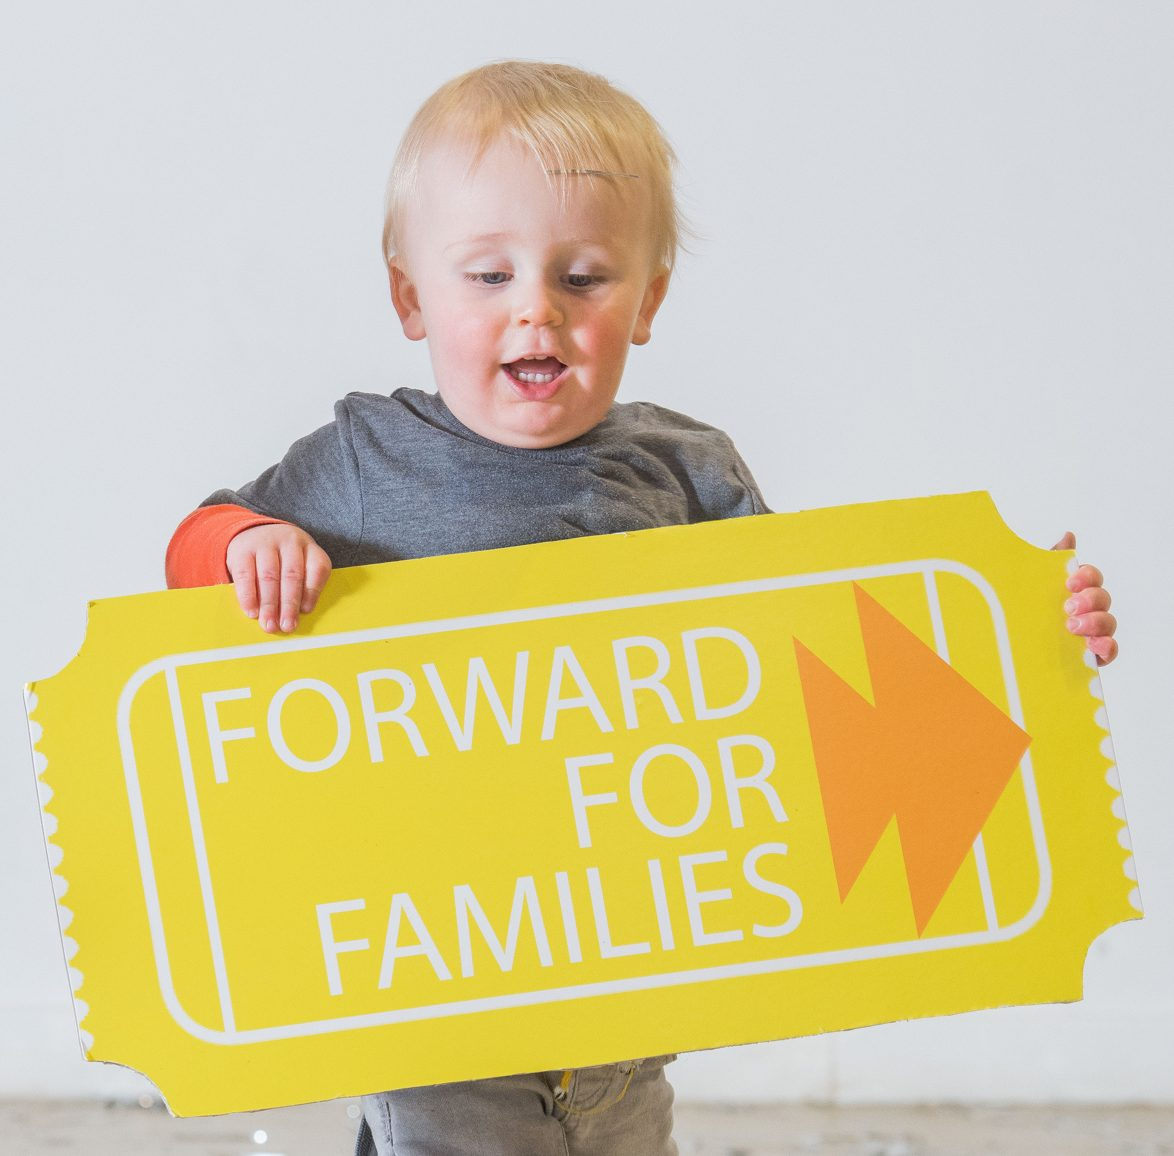 """WWW.IANGEORGESONPHOTOGRAPHY.CO.UK Picture: Finn McDougall 16months (Orange sleeves) and Bode Fleming 15months with a giant ticket Just the Ticket for Scotland's Toddlers  Starcatchers Scotland's National Arts and Early Years Organisation has launched a new fundraising scheme, Forward for Families, to provide theatre seats for very young children and their families in need across Scotland.  A recent study suggests more than 200,000 children are growing up in poverty in Scotland. Scottish Government Social Research consistently evidences that access to theatre and cultural experience enriches lives and impacts positively on health and well-being. However a Starcatchers audit of audience participation suggests 72% rarely engage in cultural experiences with their babies and many have never engaged with their local community arts venue.  Forward for Families will enable parents with very young children from all walks of life in Scotland to experience a high-quality shared theatre experience.  Seats will be allocated within the Scottish tour of Starcatchers and Edinburgh based dance company Curious Seed's new dance, live music and theatre experience MamaBabaMe, for babies aged 18 months – 3 years and their parents and carers.  Working in partnership with three venues in Scotland; The Byre Theatre in St Andrews, Platform in Easterhouse, Glasgow and Macrobert Arts Centre in Stirling, the scheme has an initial fundraising target of £800 and will directly benefit 45 families across these three communities.  Scottish children's theatre is celebrated across the world as being some of the most creative and innovative. Starcatchers has seen growth, appreciation and demand for their work rapidly increase as parents, carers and educators see the value that creativity and the arts has on young children.  Rhona Matheson, Chief Executive of Starcatchers said:  """"Babies and the adults who care for them are at the heart of everything that we do at Starcatchers. We believe that arts and c"""